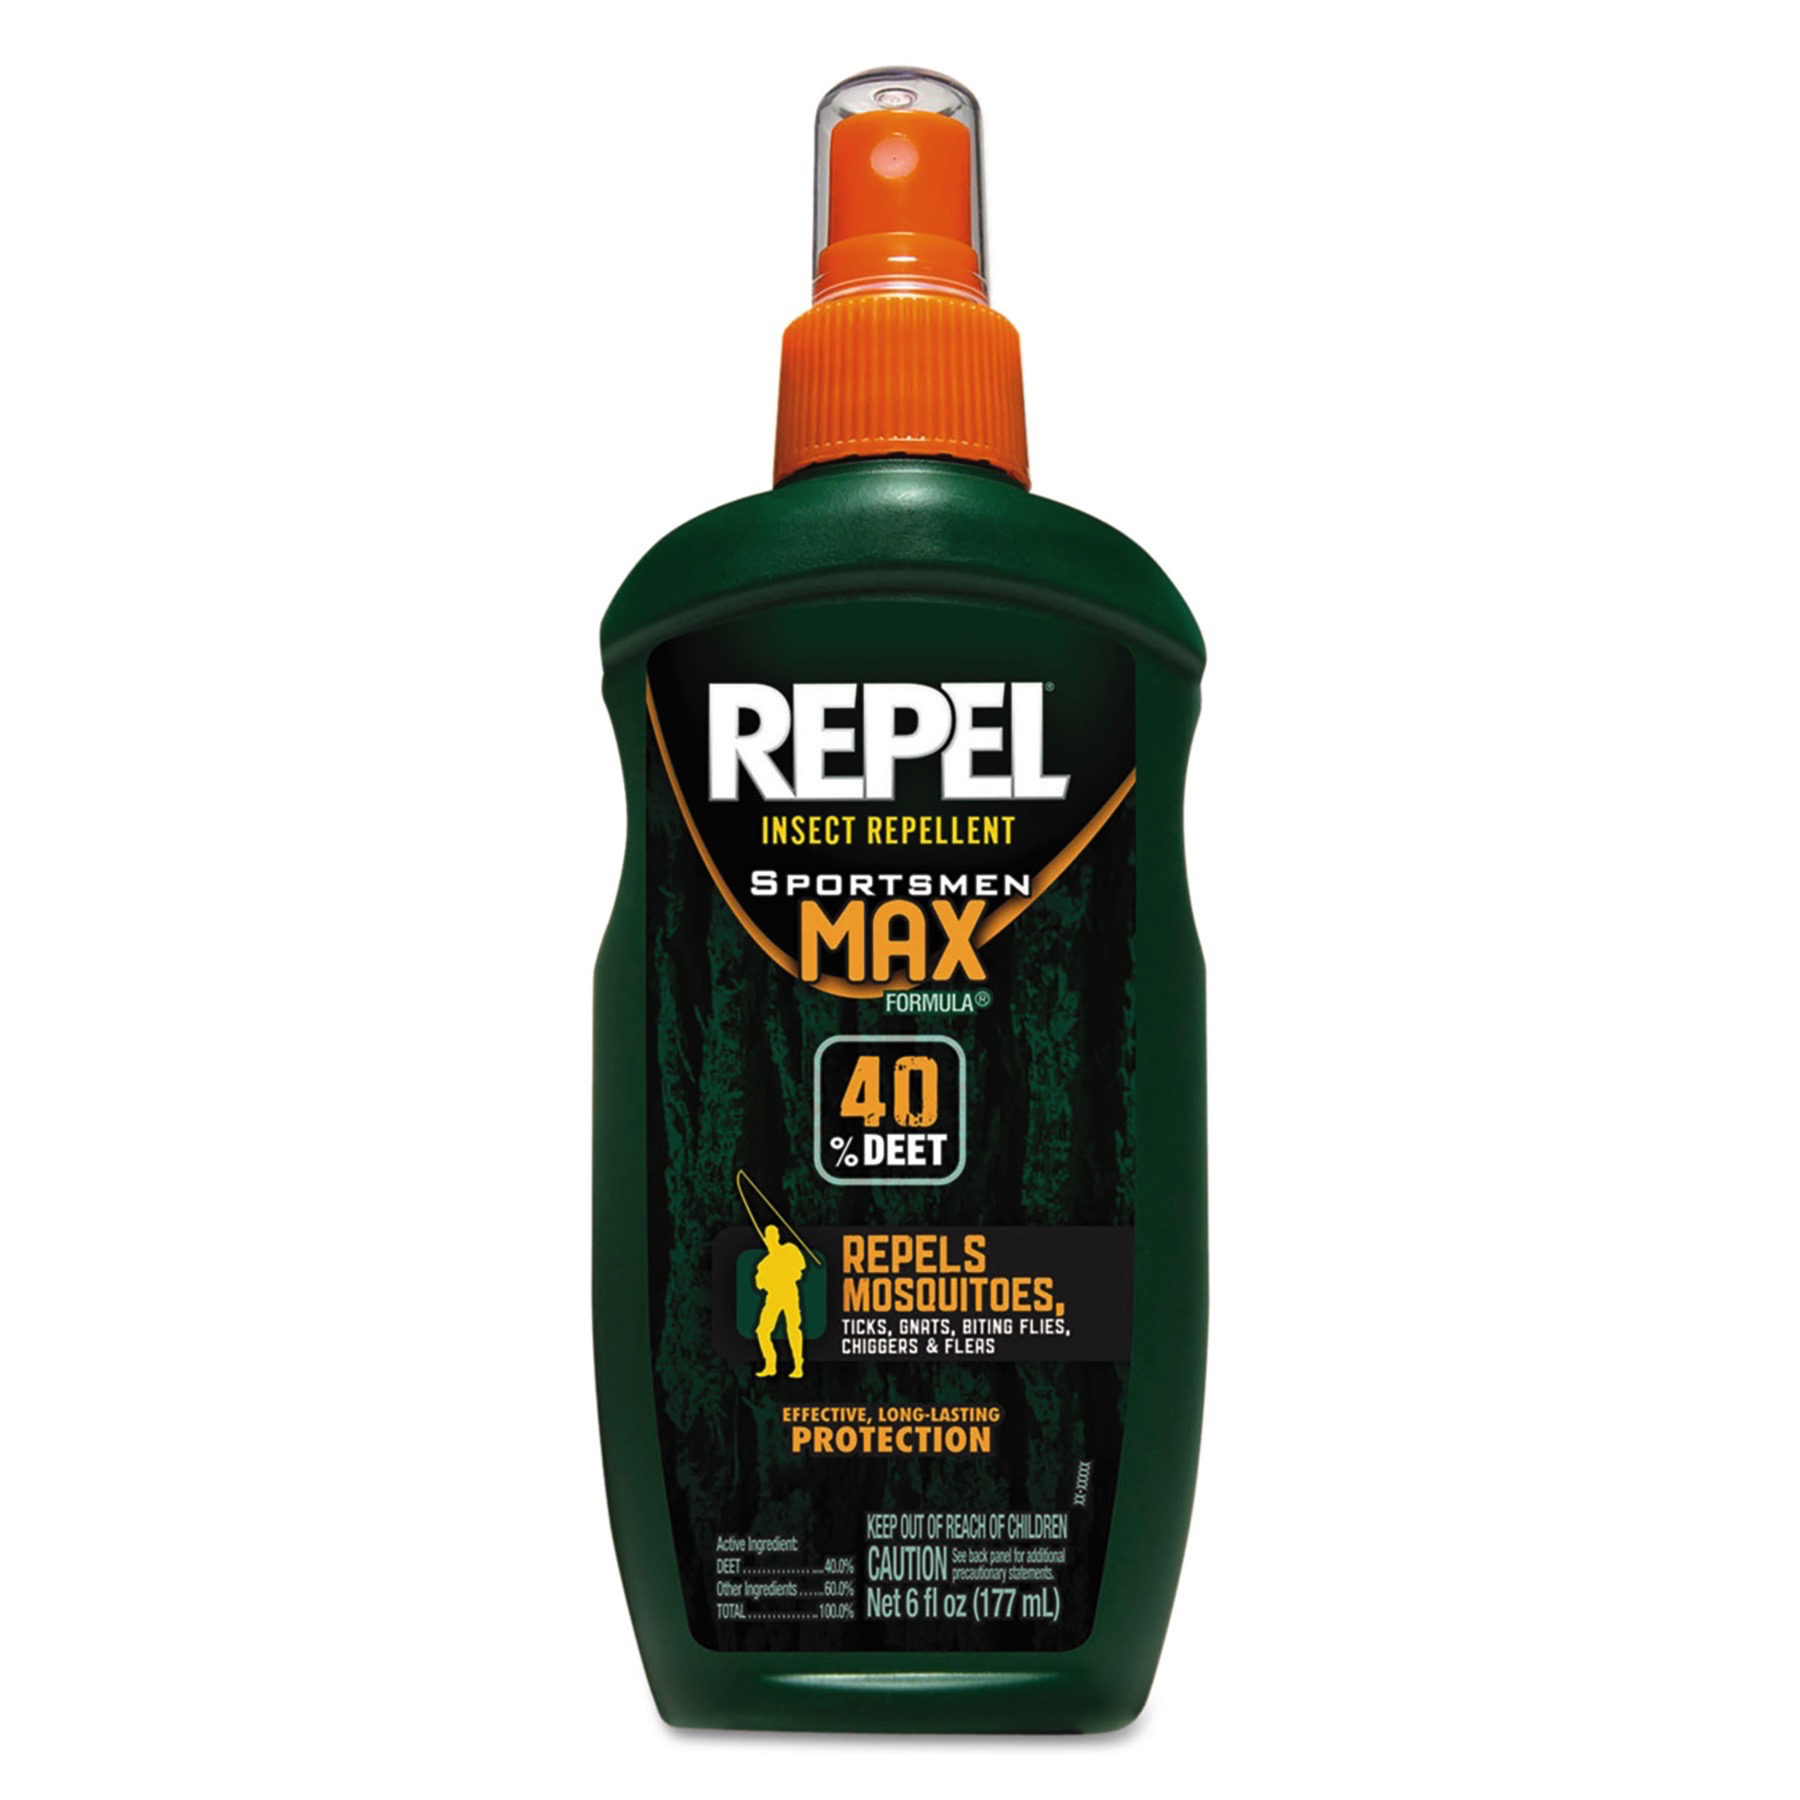 Repel Insect Repellent Sportsmen Max Formula Pump Spray